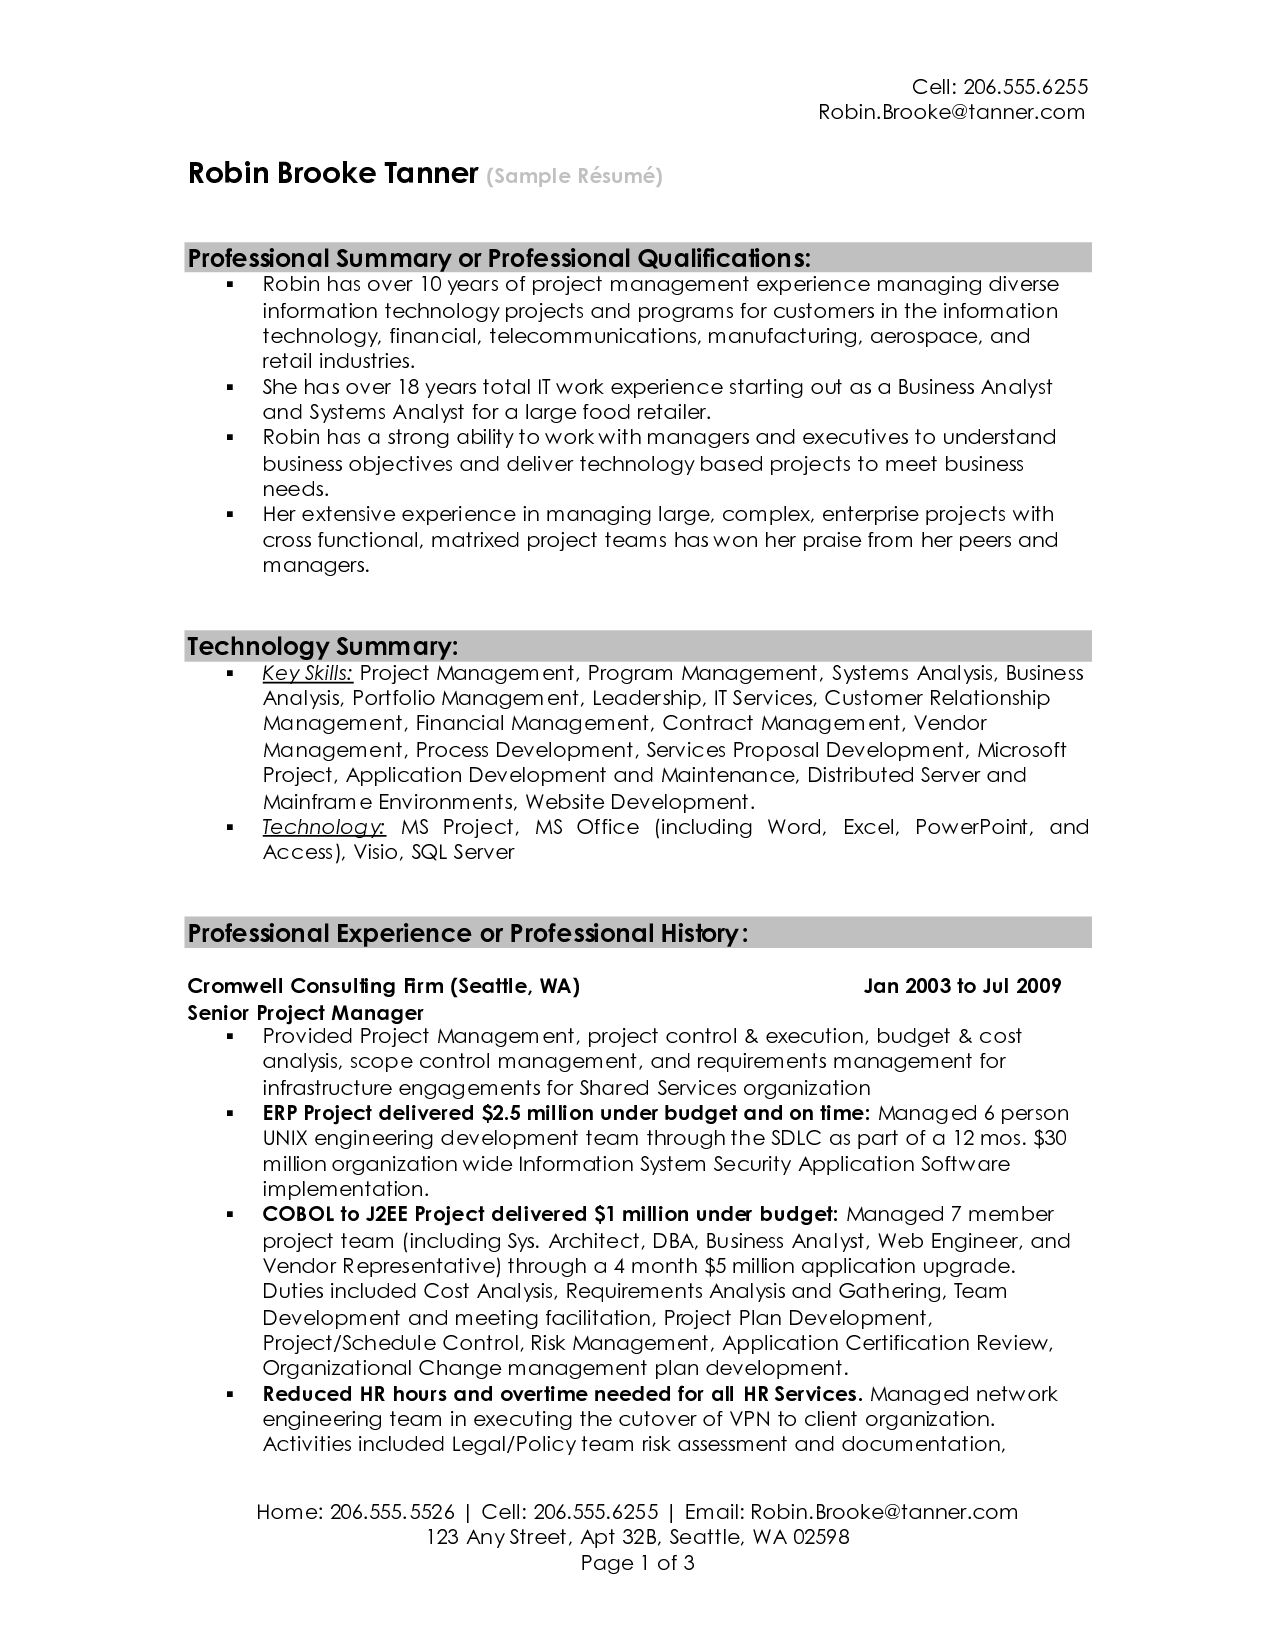 sample professional summary resumes fast lunchrock co